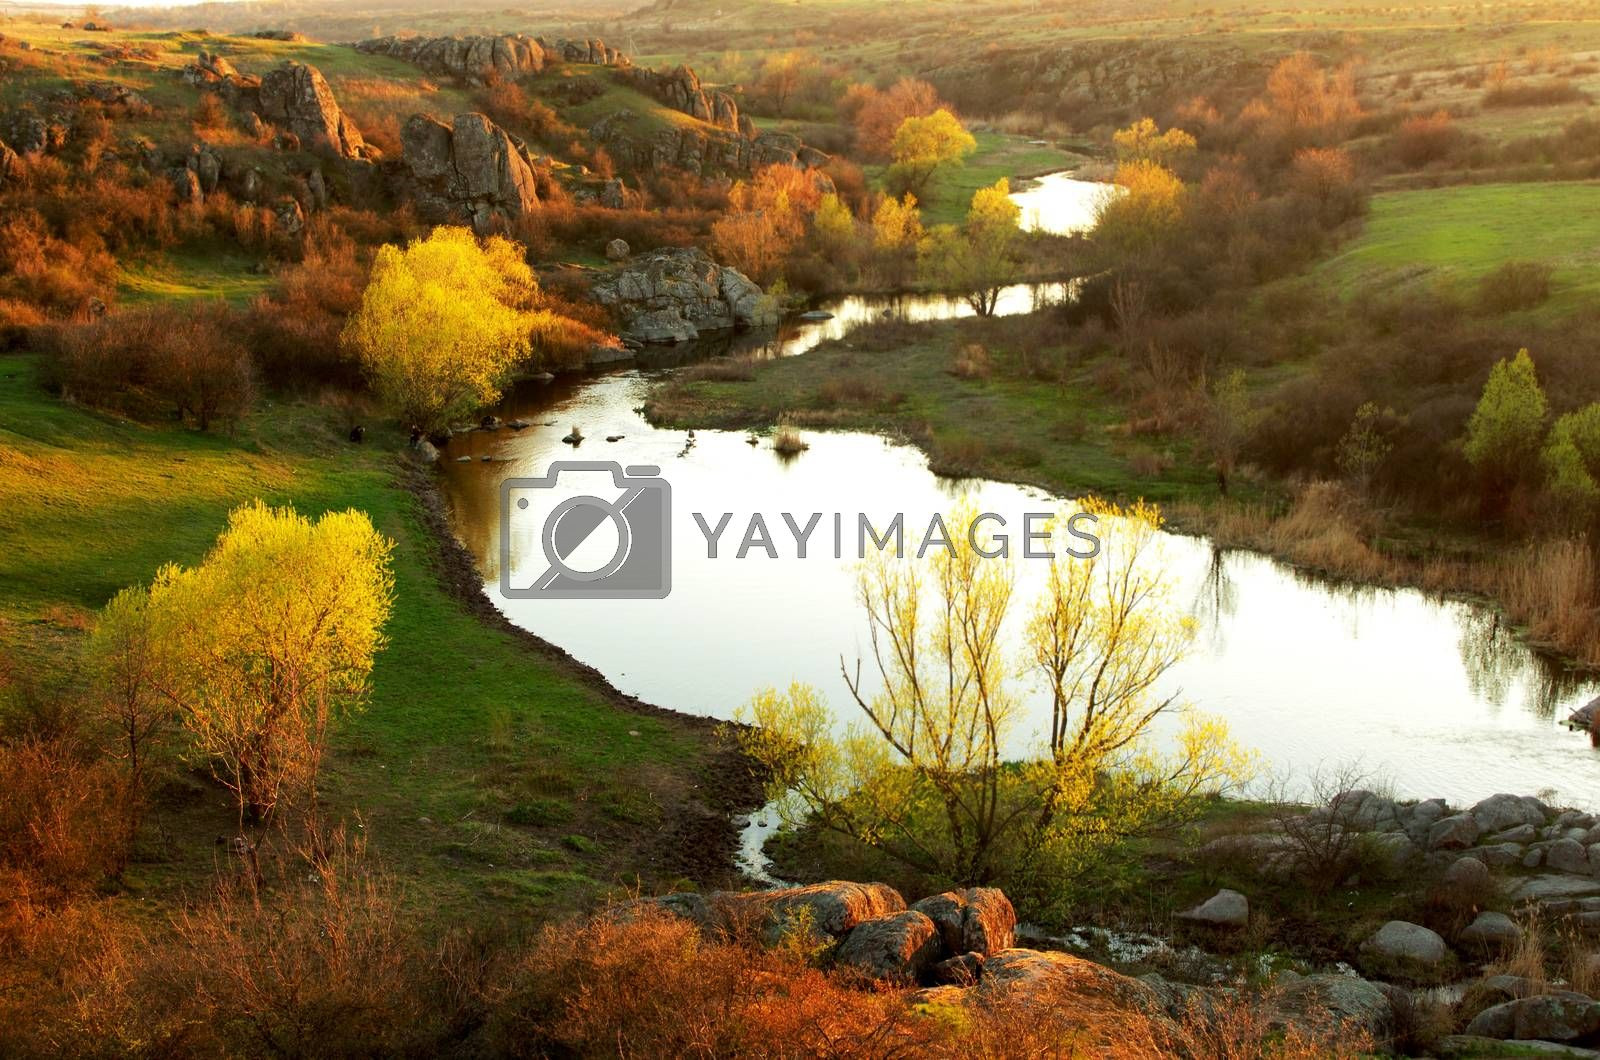 Royalty free image of Sunset on the river Mertvovod by dolnikow